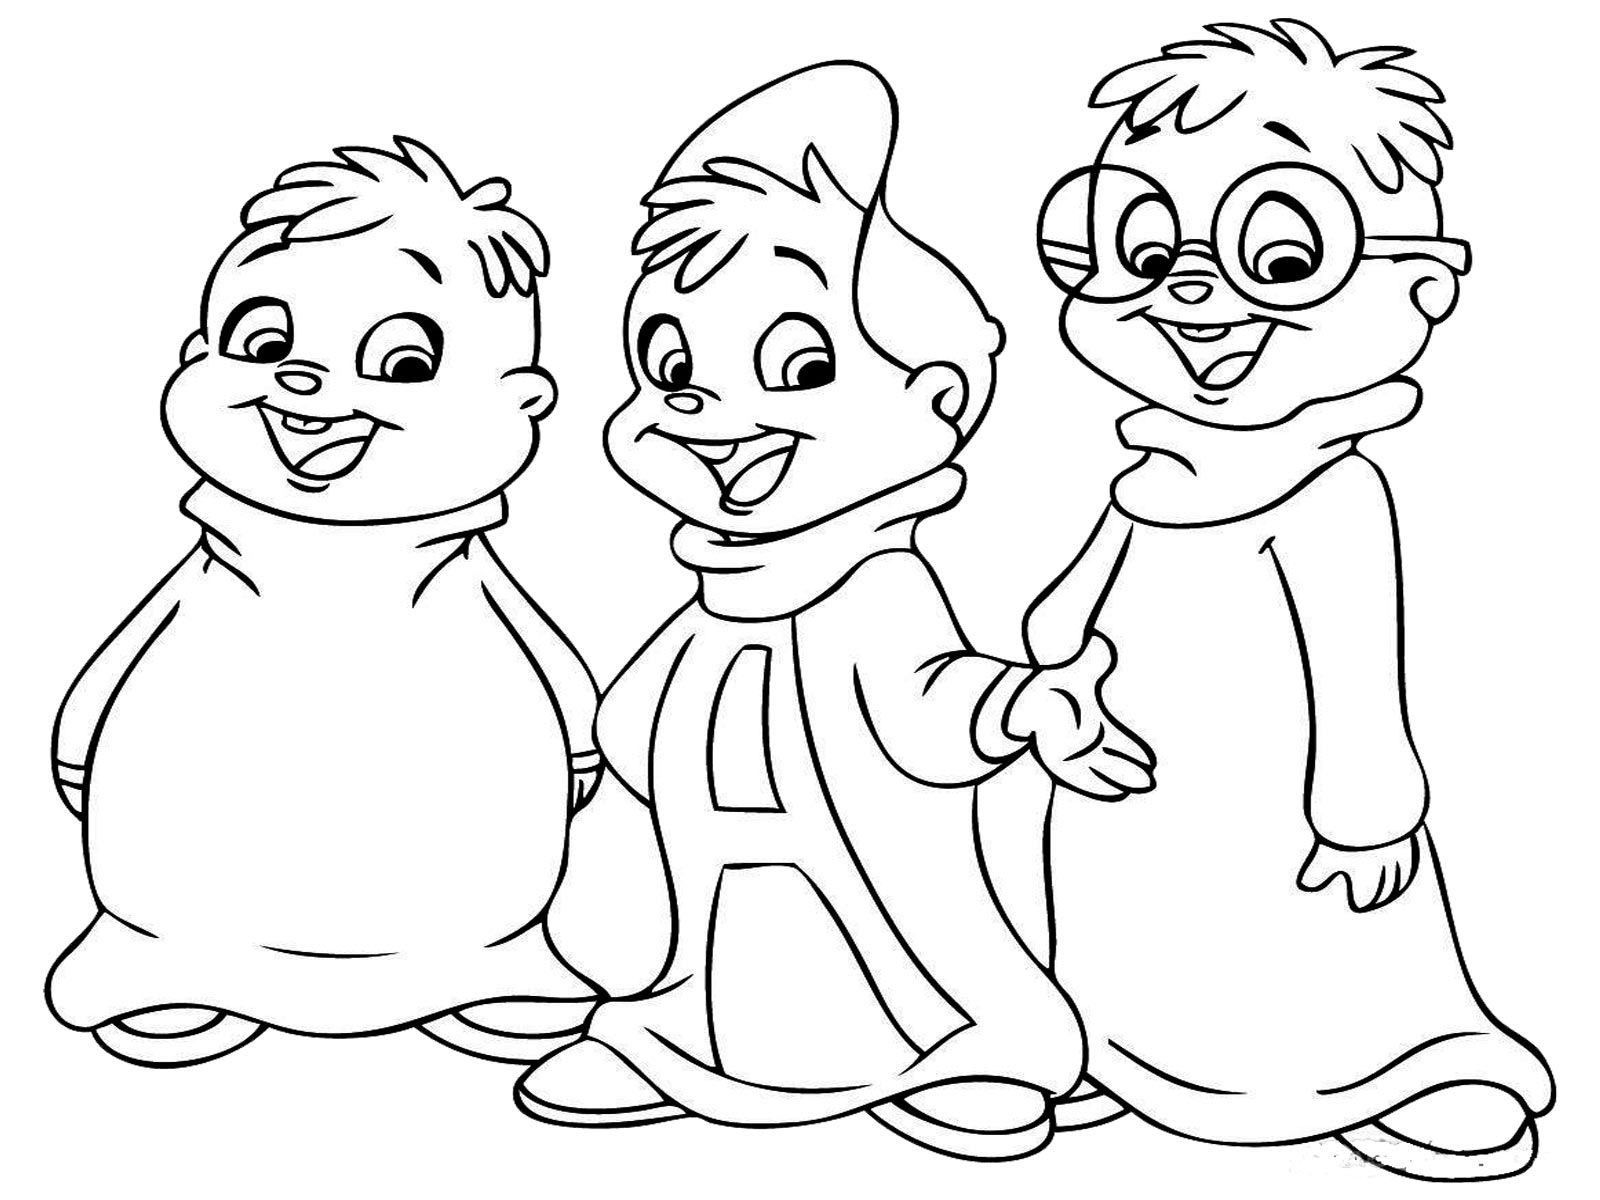 90s Coloring Sheets 90s Cartoons Coloring Pages Coloring Home